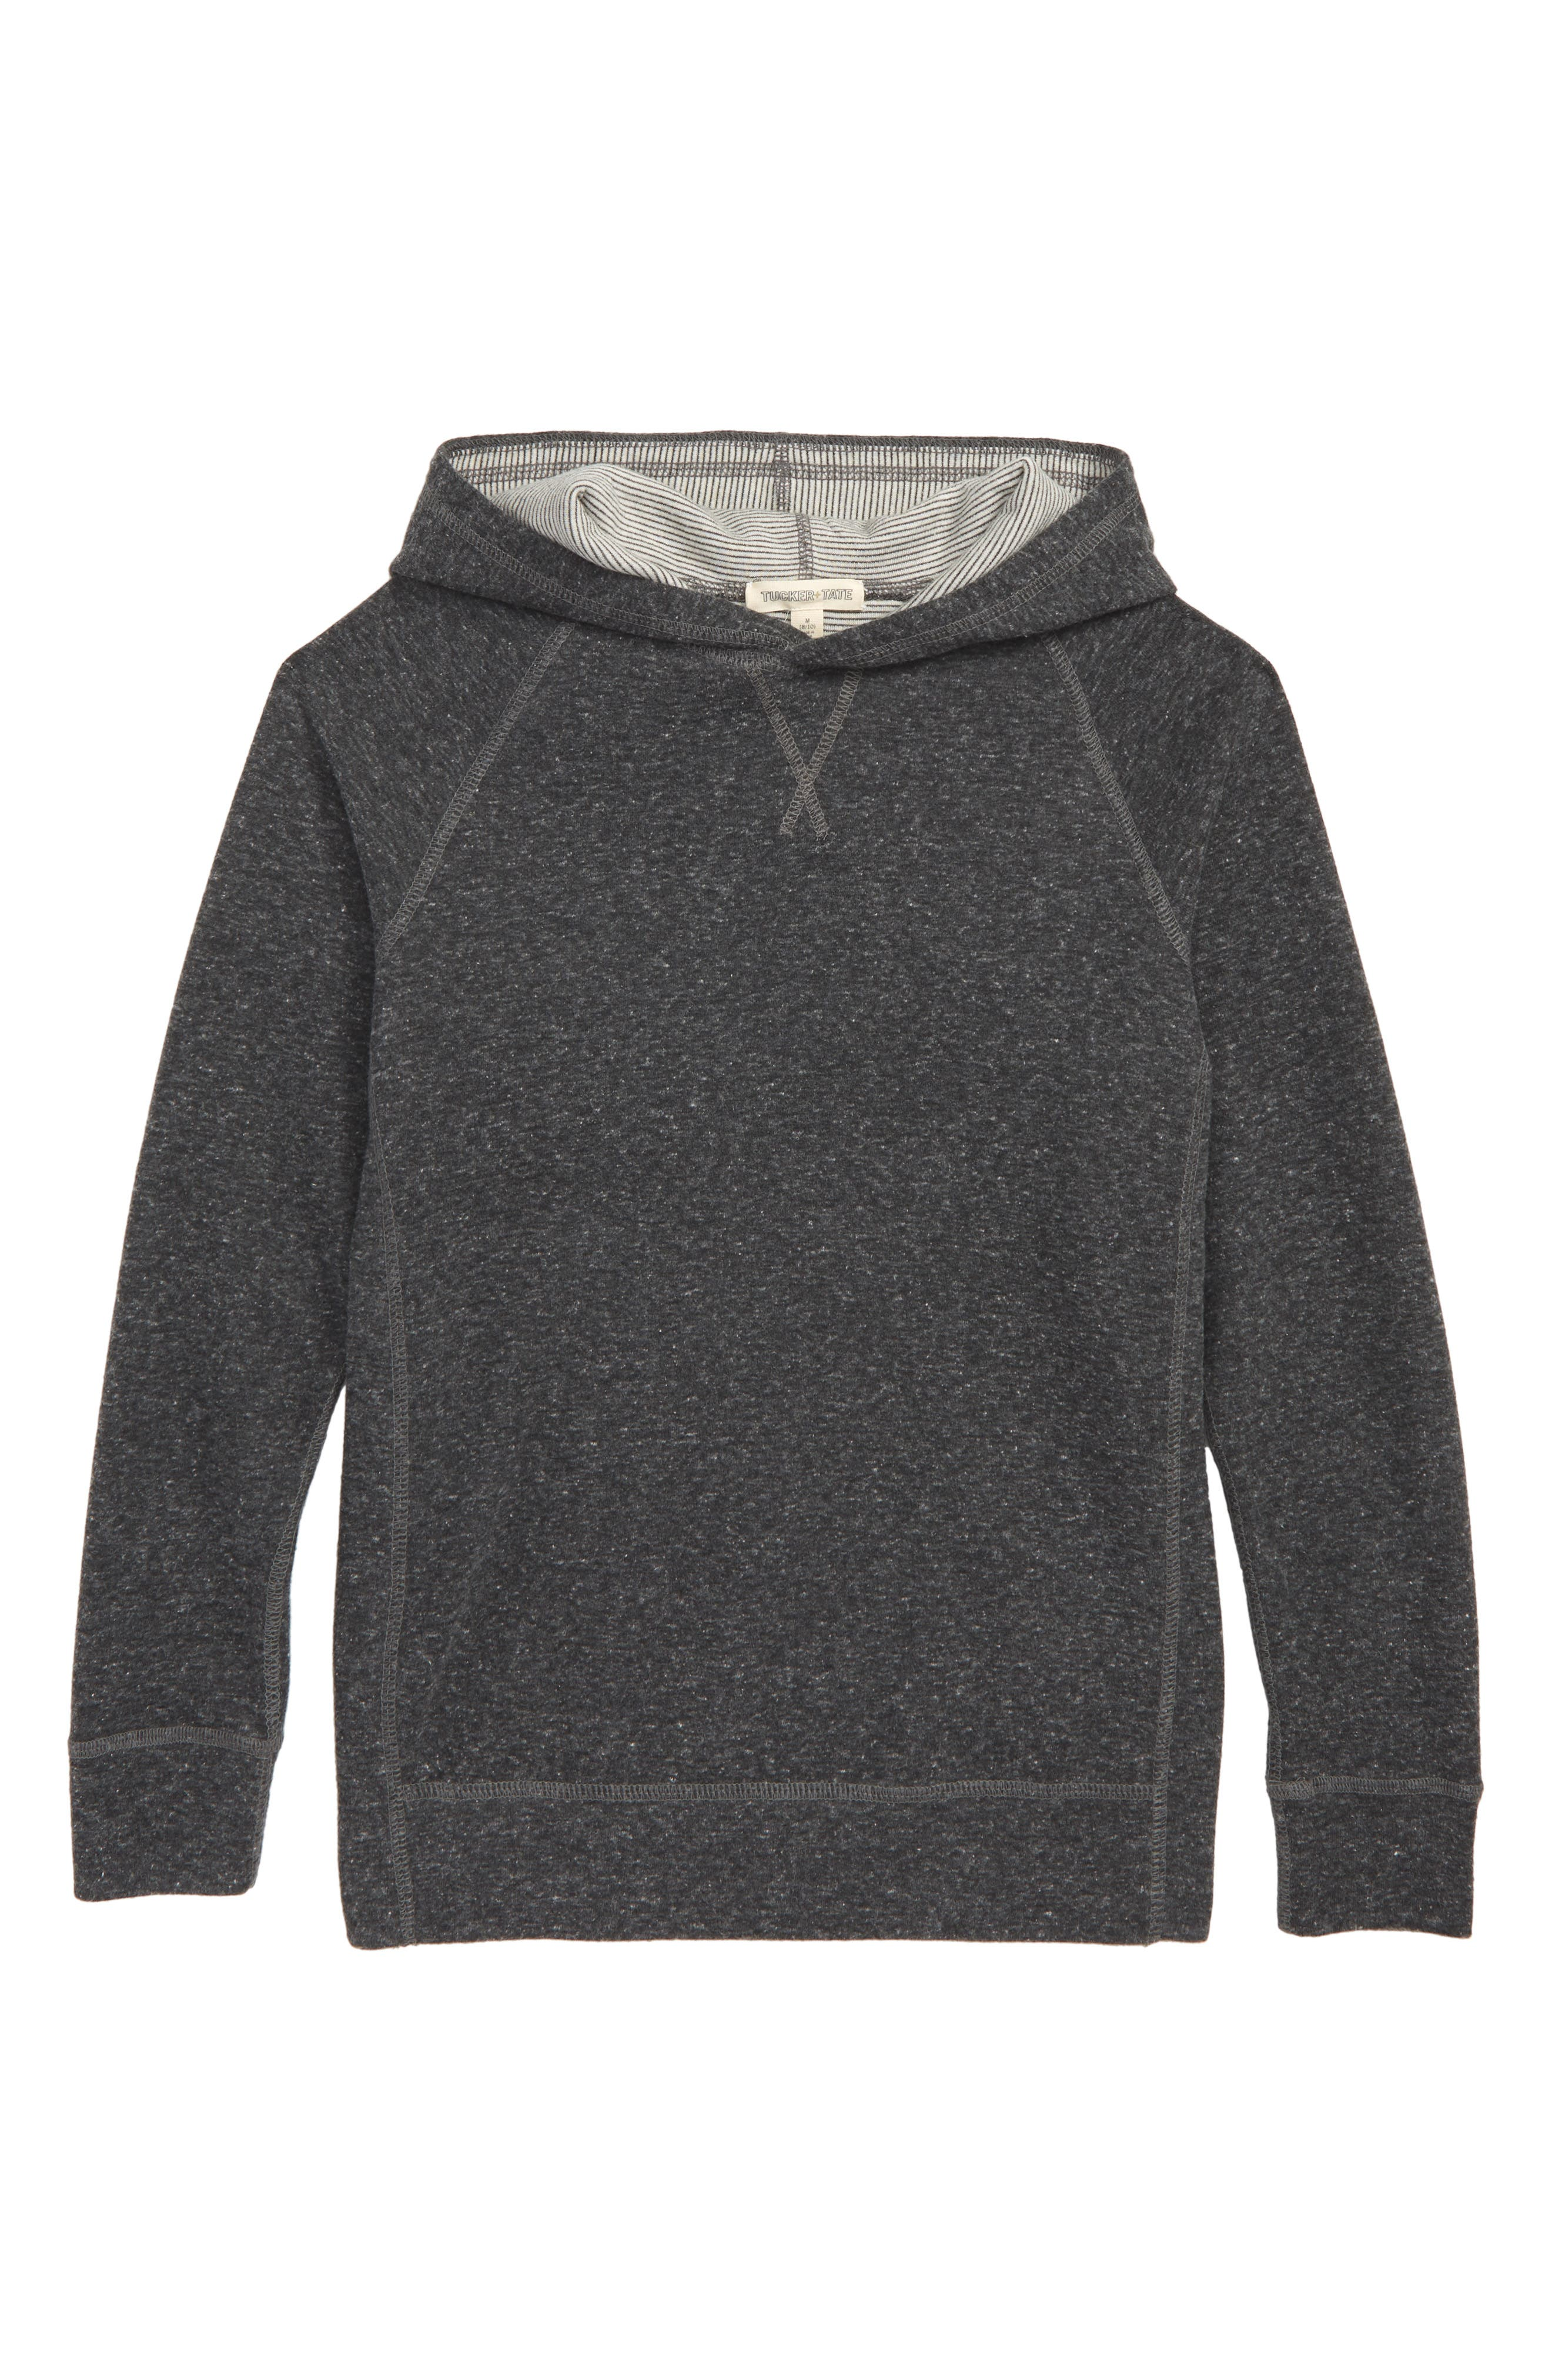 TUCKER + TATE,                             Double Knit Hoodie,                             Main thumbnail 1, color,                             GREY CHARCOAL HEATHER